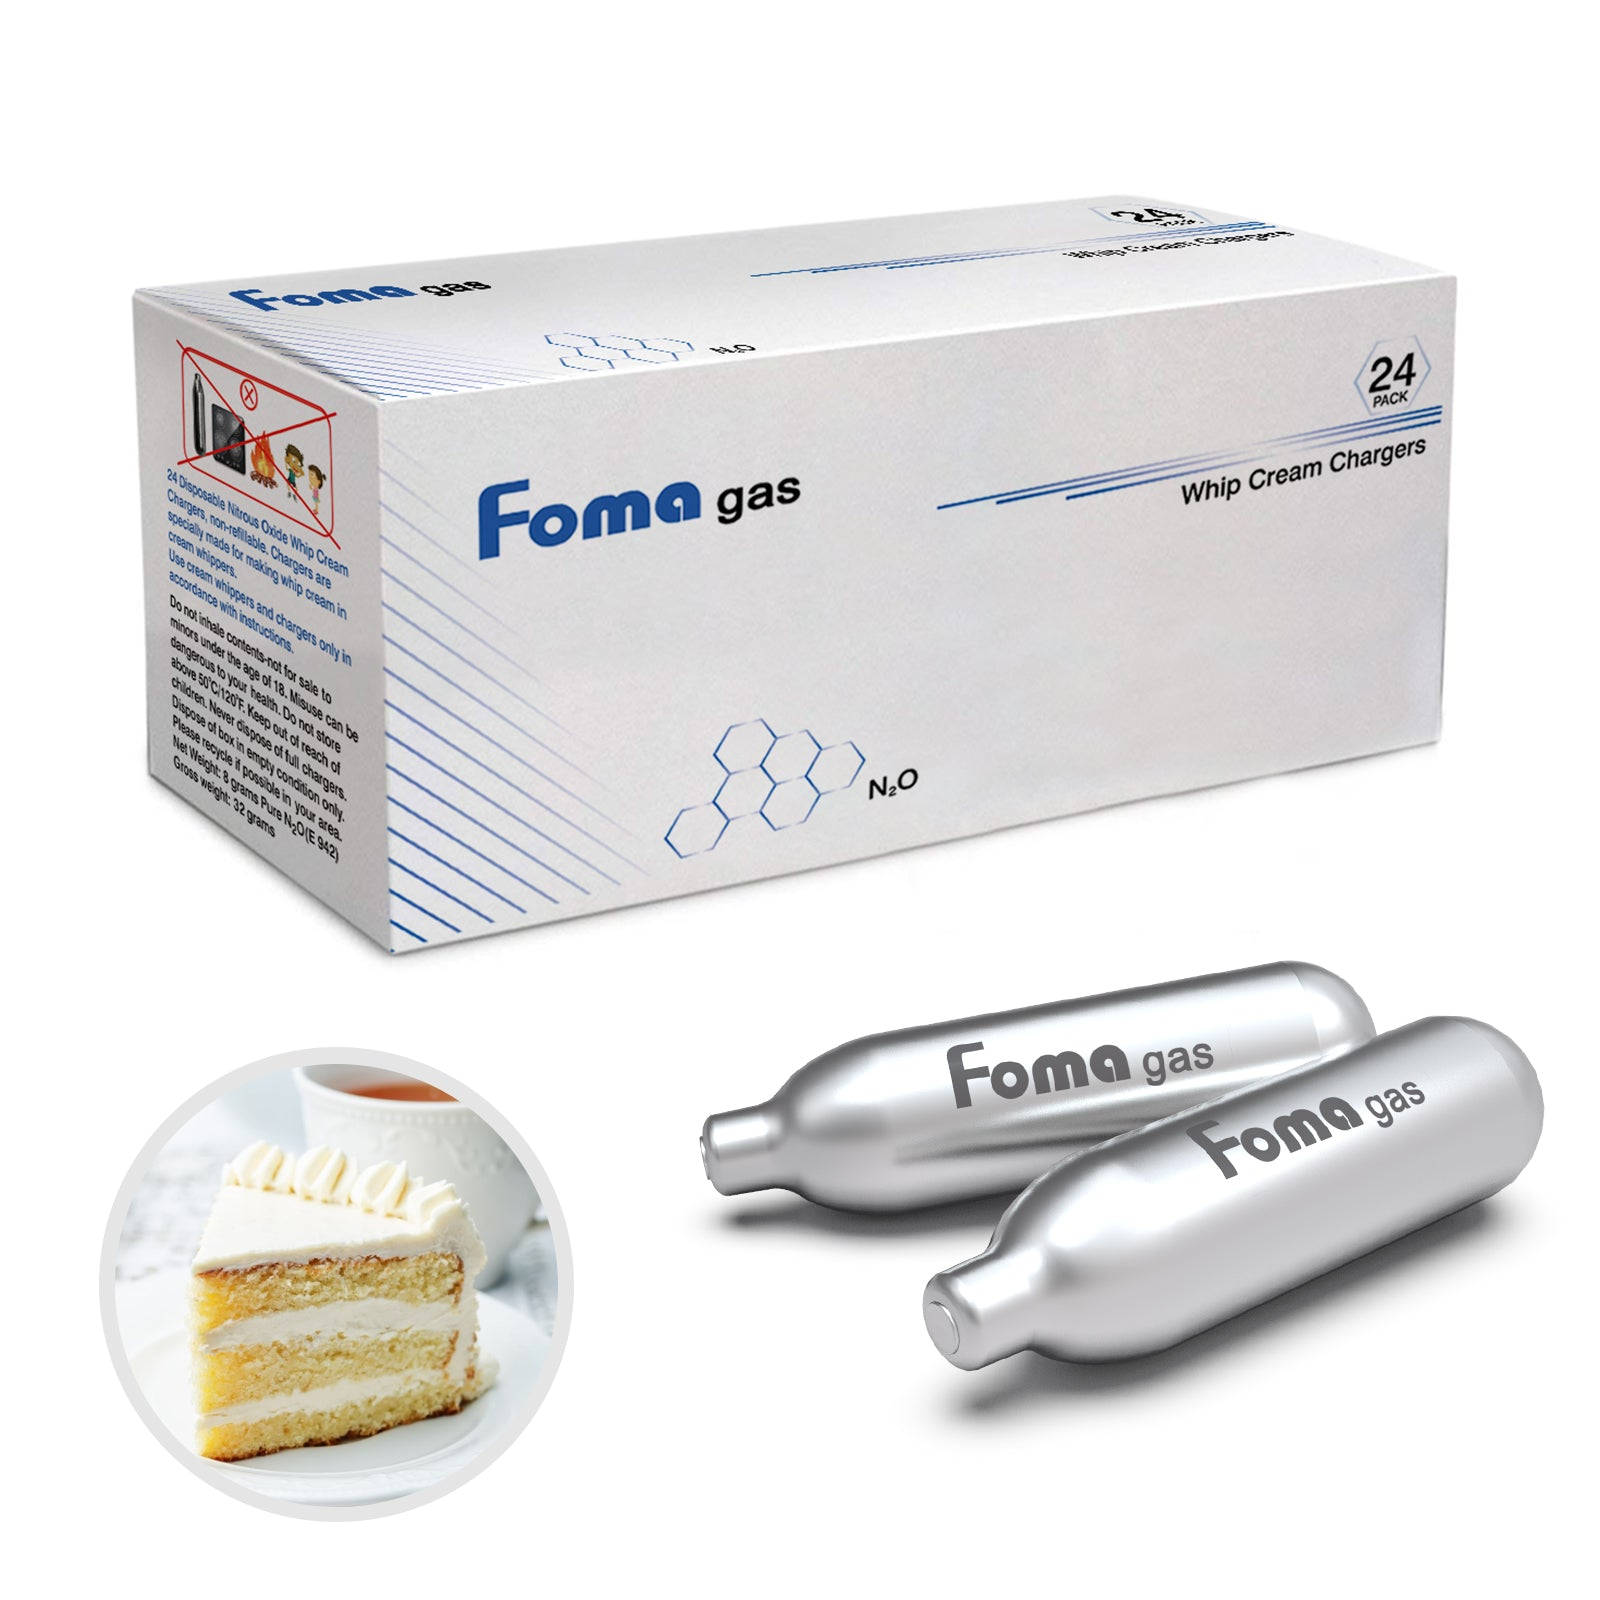 FomaGas 8g N2O Whipped Cream Chargers 96 Packs